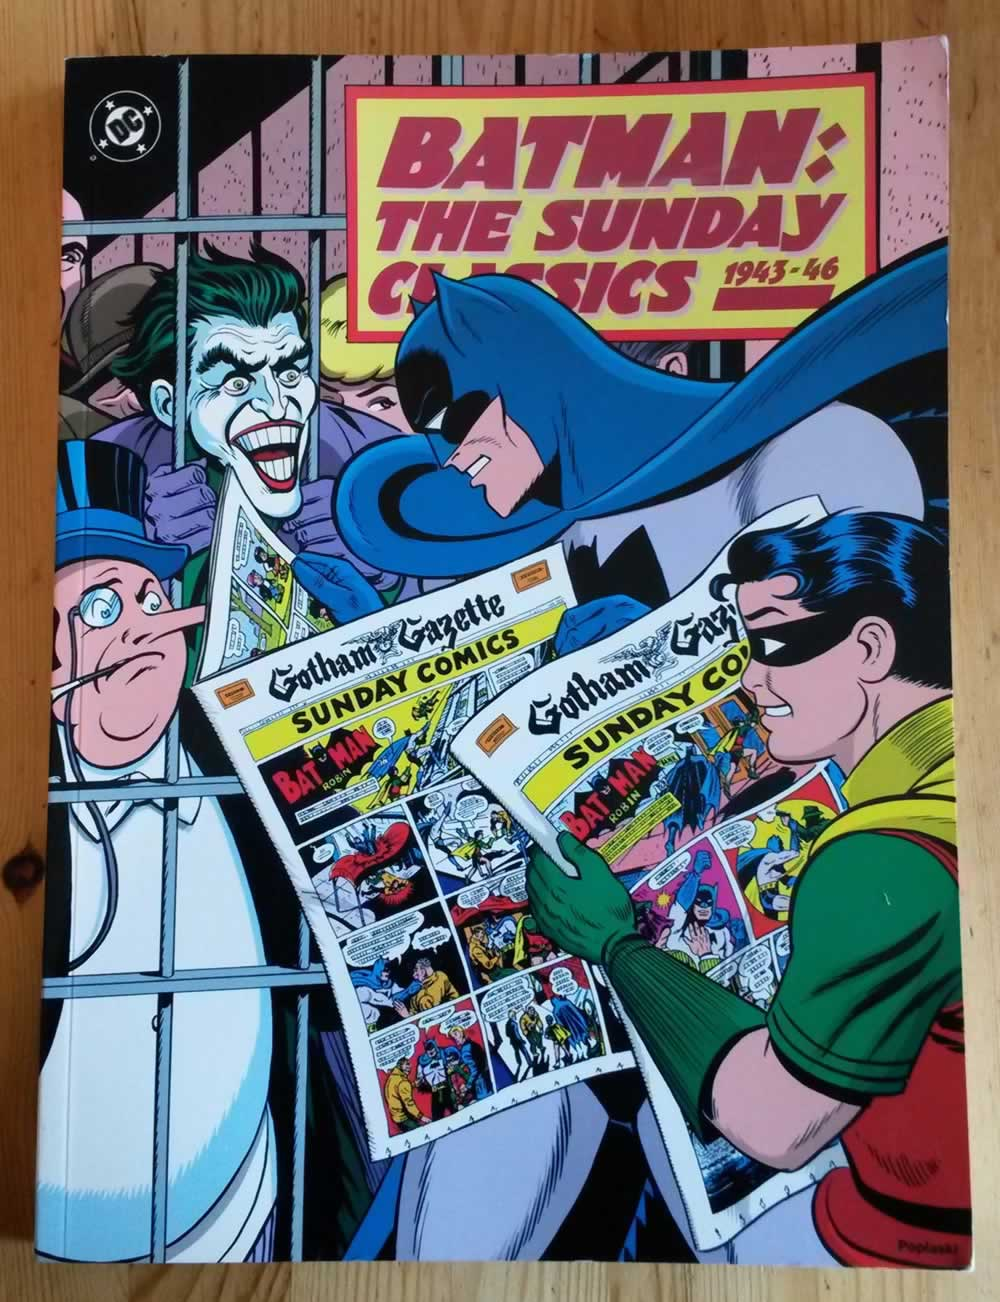 Batman: the Sunday classics 1943-46